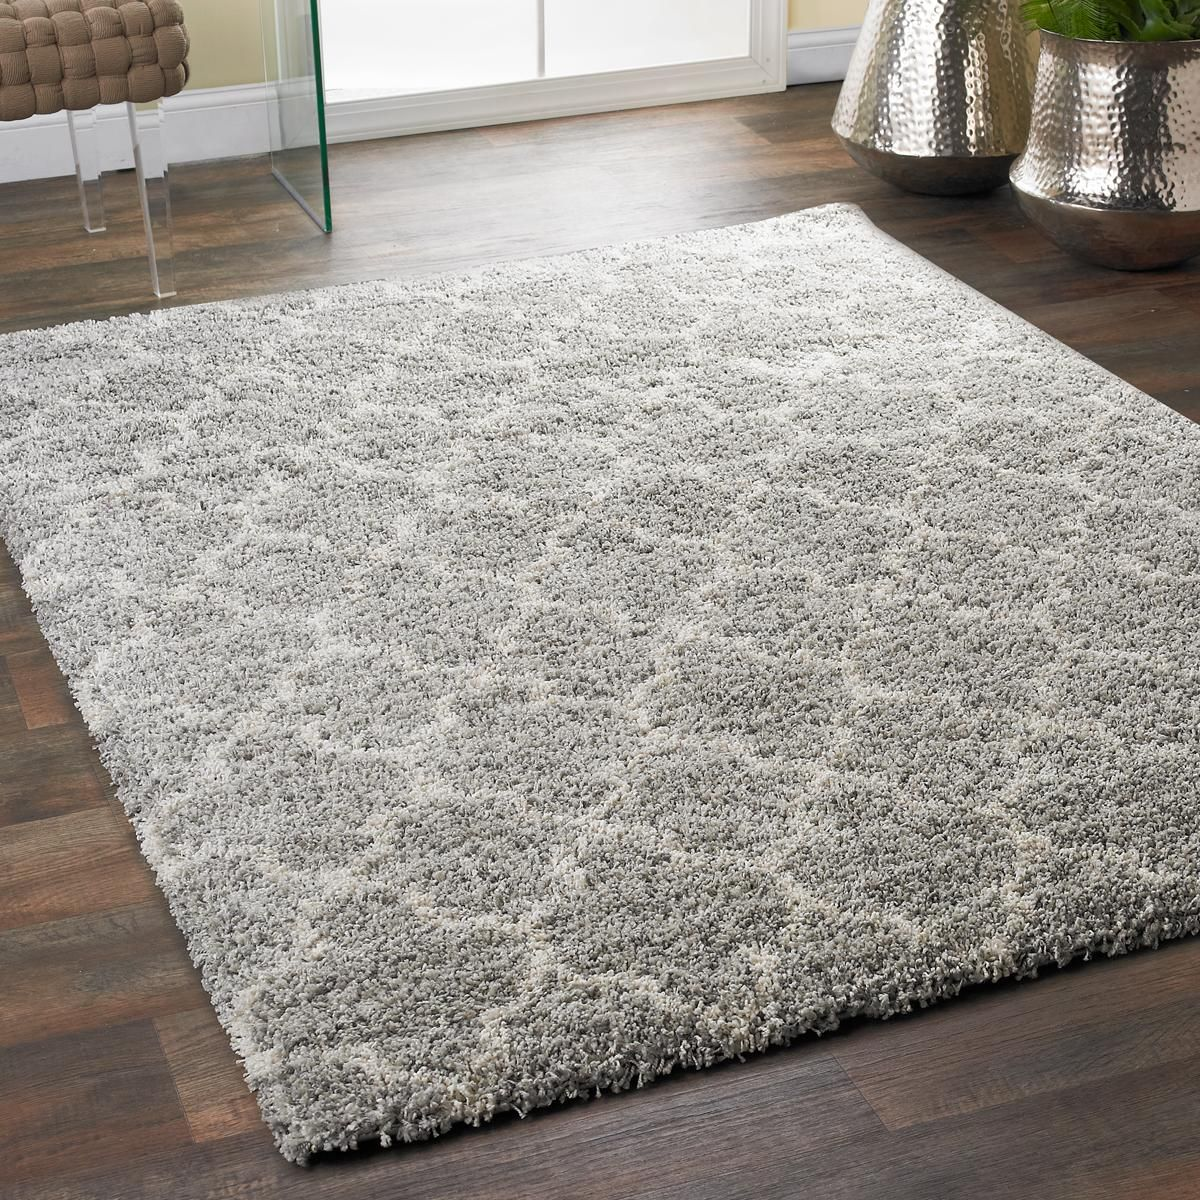 Lofty trellis plush area rug plush area rugs and plush for Dining room rugs 9x12